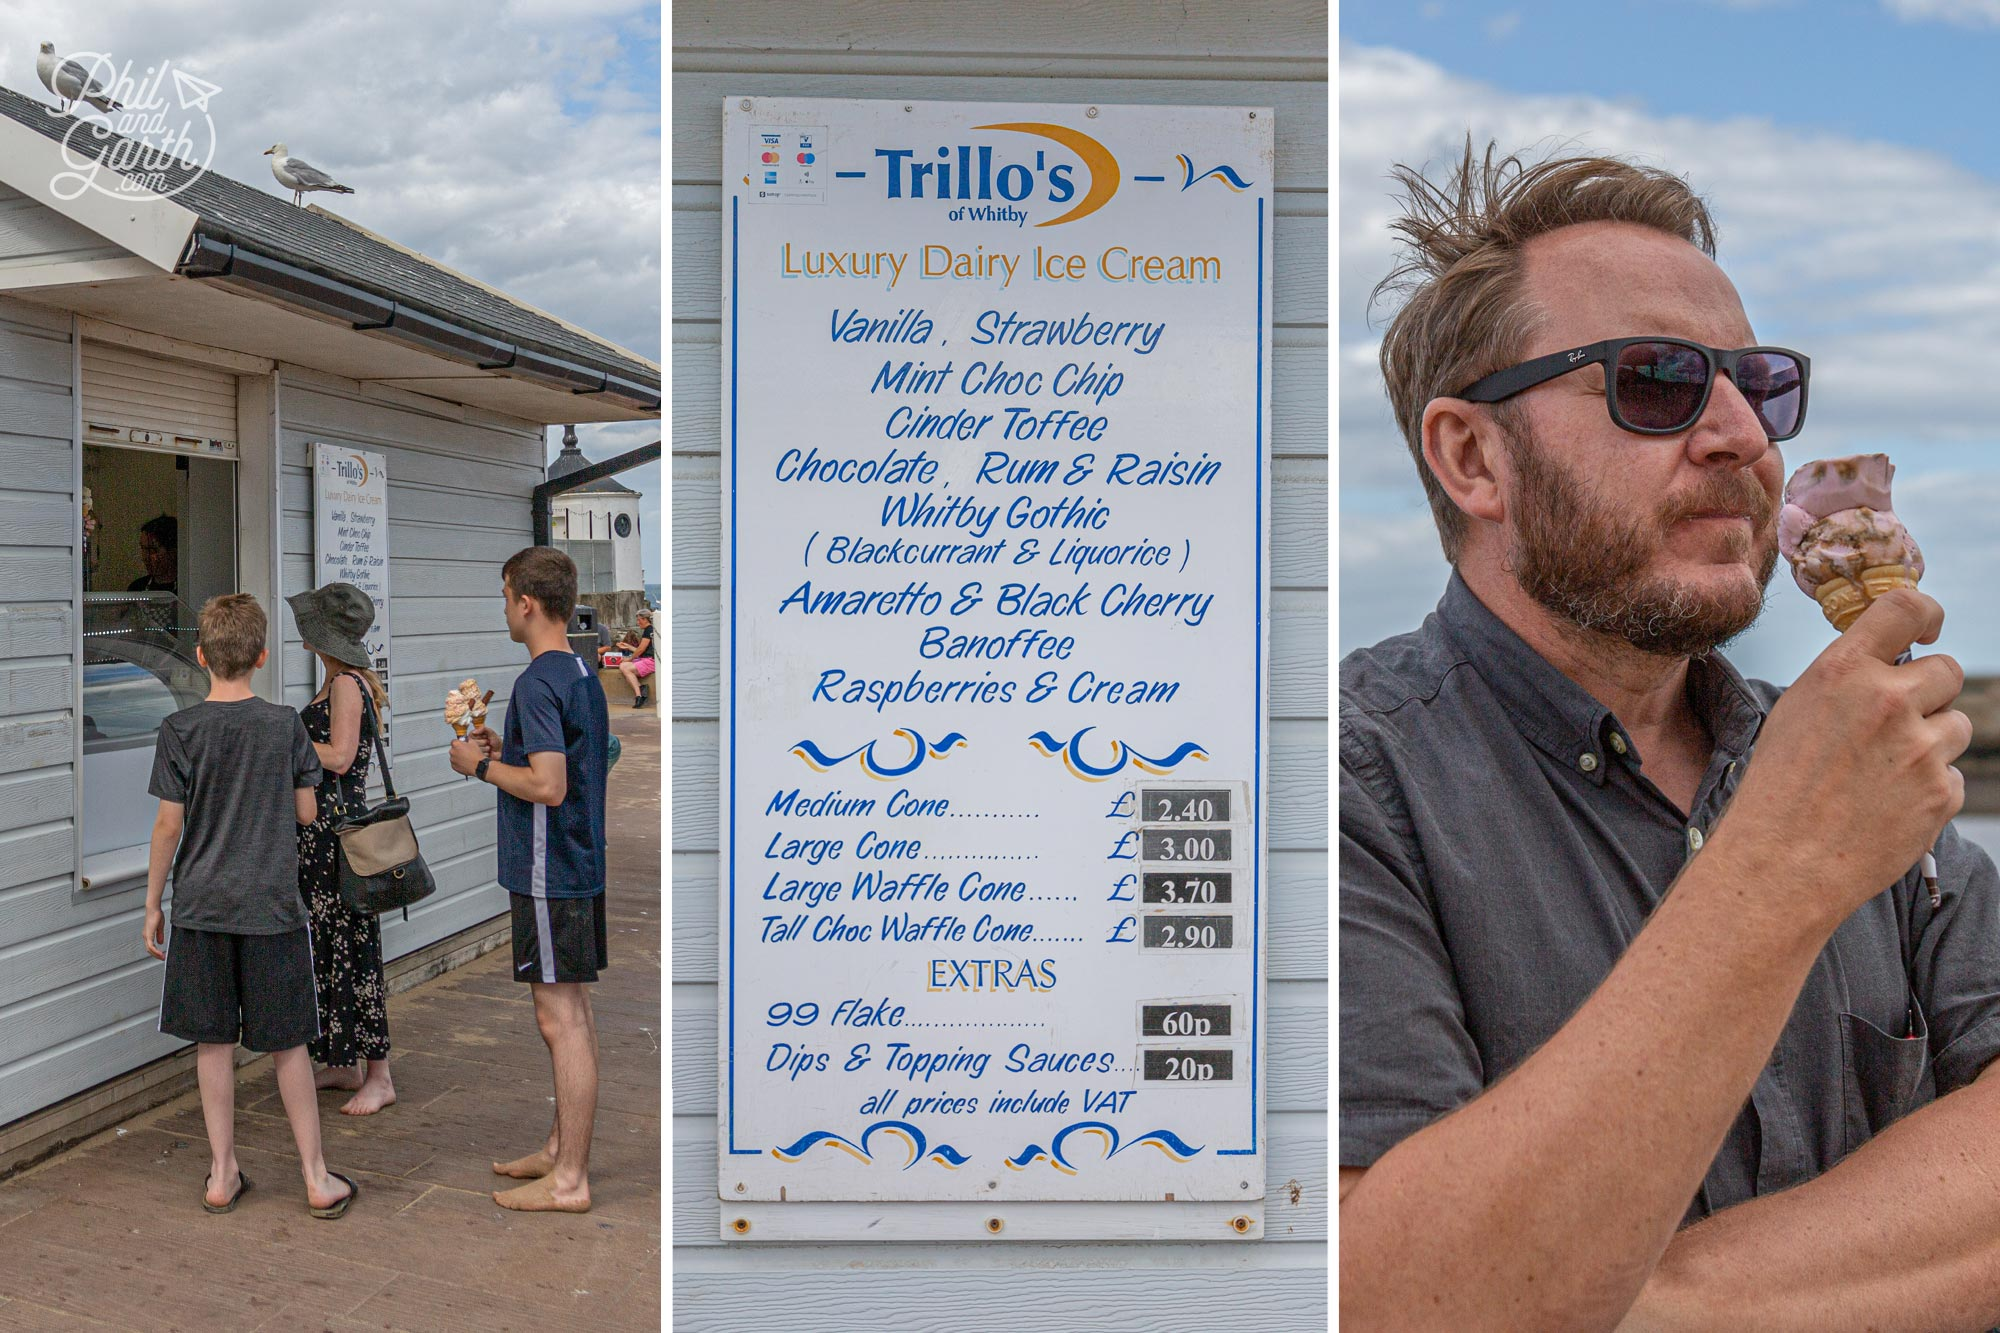 On the West pier - Trillo's Ice Cream is a Whitby institution, Garth tried their Whitby Gothic